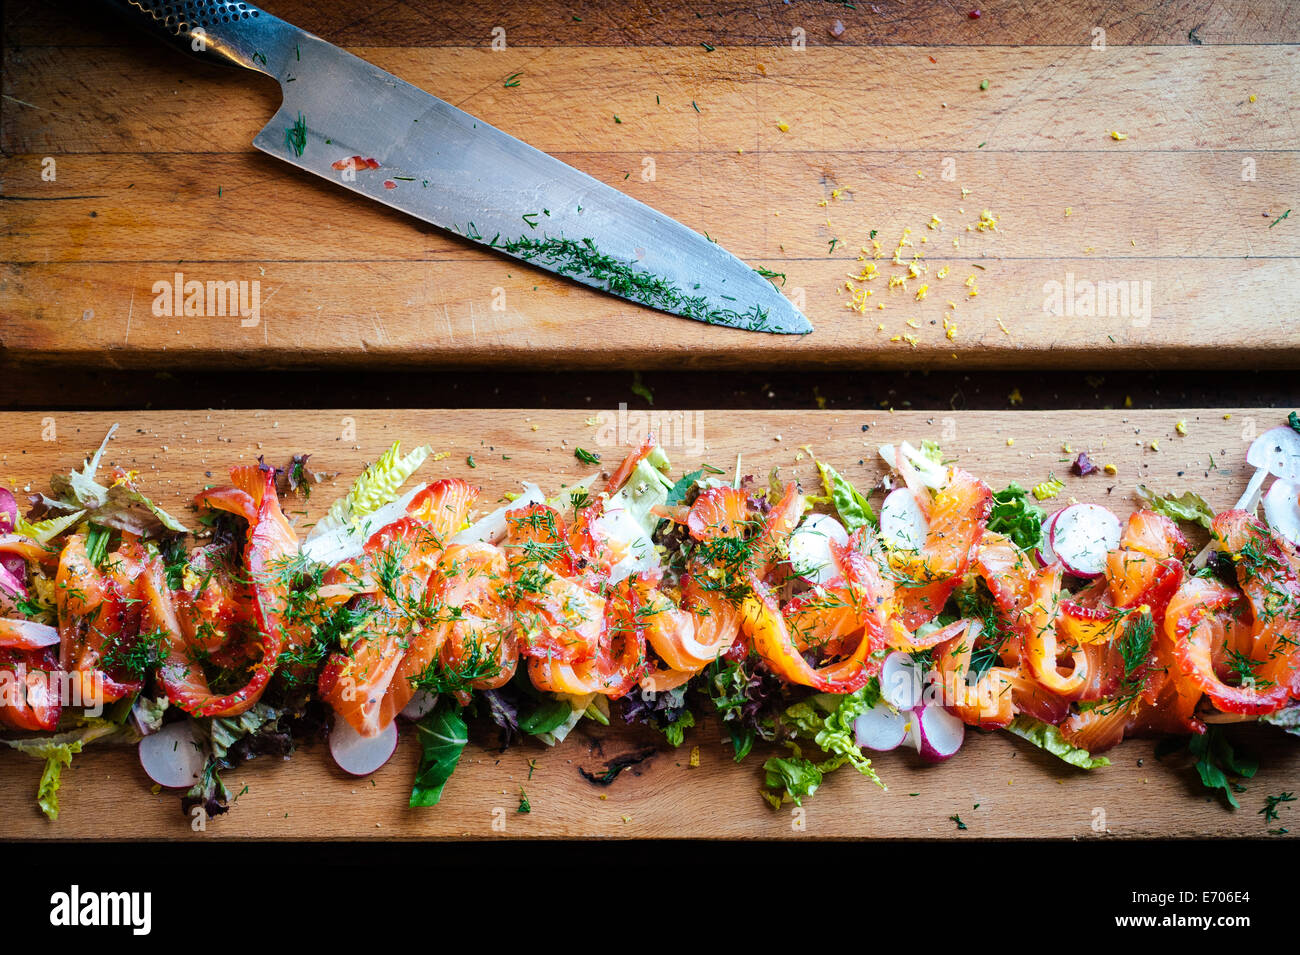 Salade de saumon Gravlax, still life Photo Stock